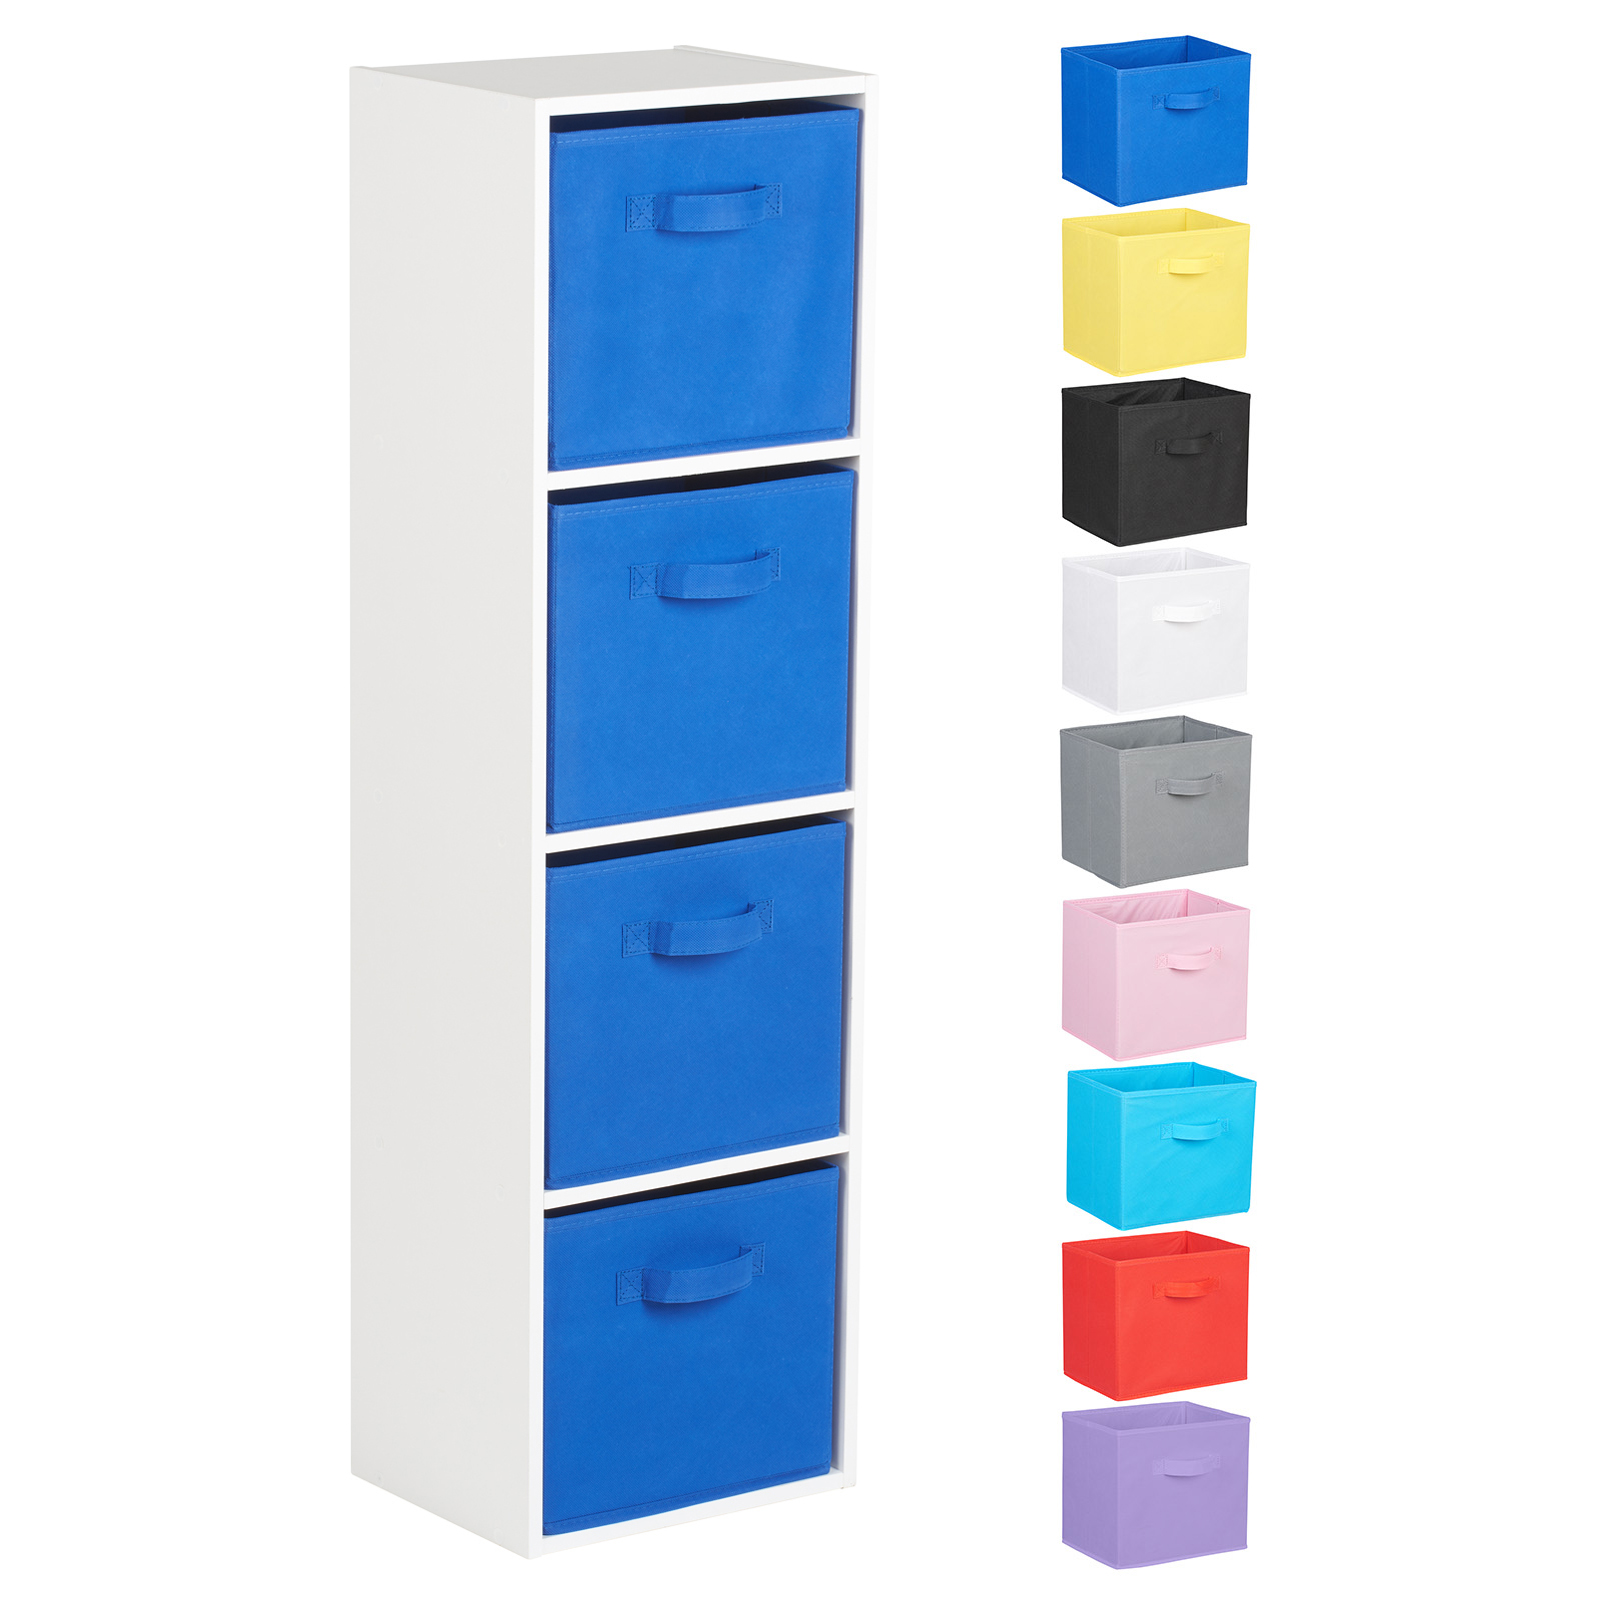 Hartleys-4-Tier-White-Bookcase-Wooden-Display-Shelving-Unit-amp-Fabric-Storage-Box thumbnail 14